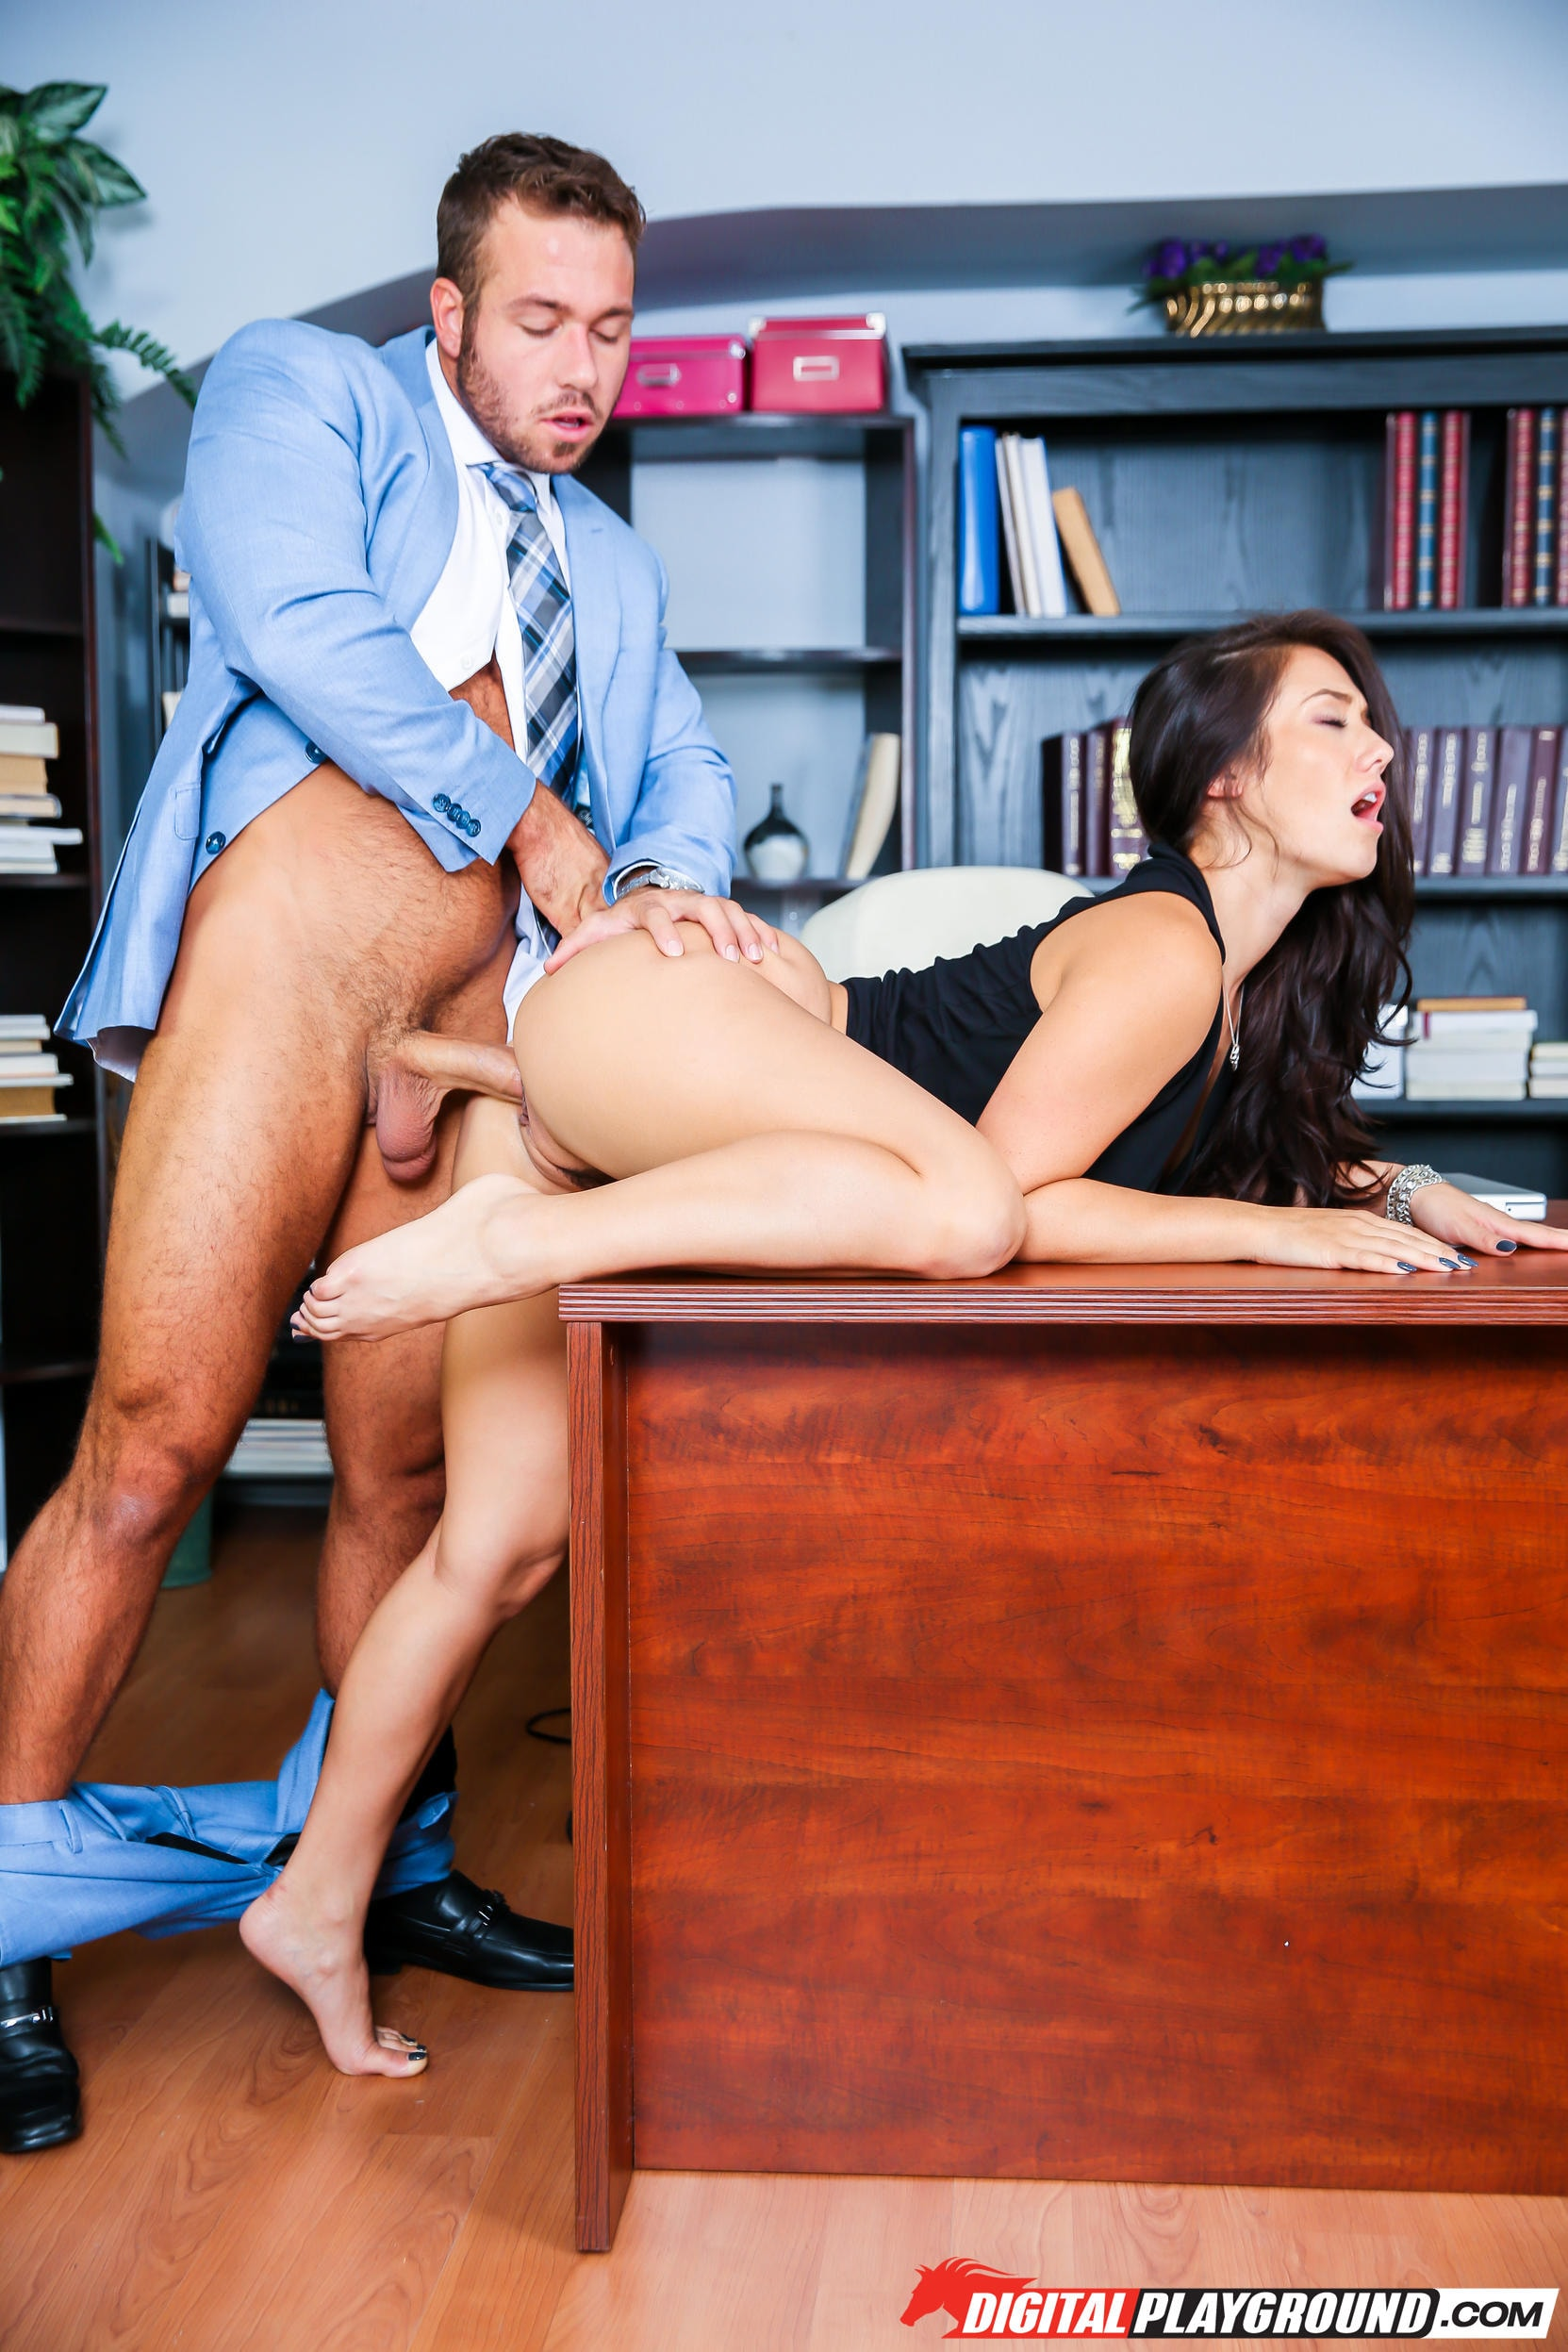 Youn girl fuck in office pic — photo 14